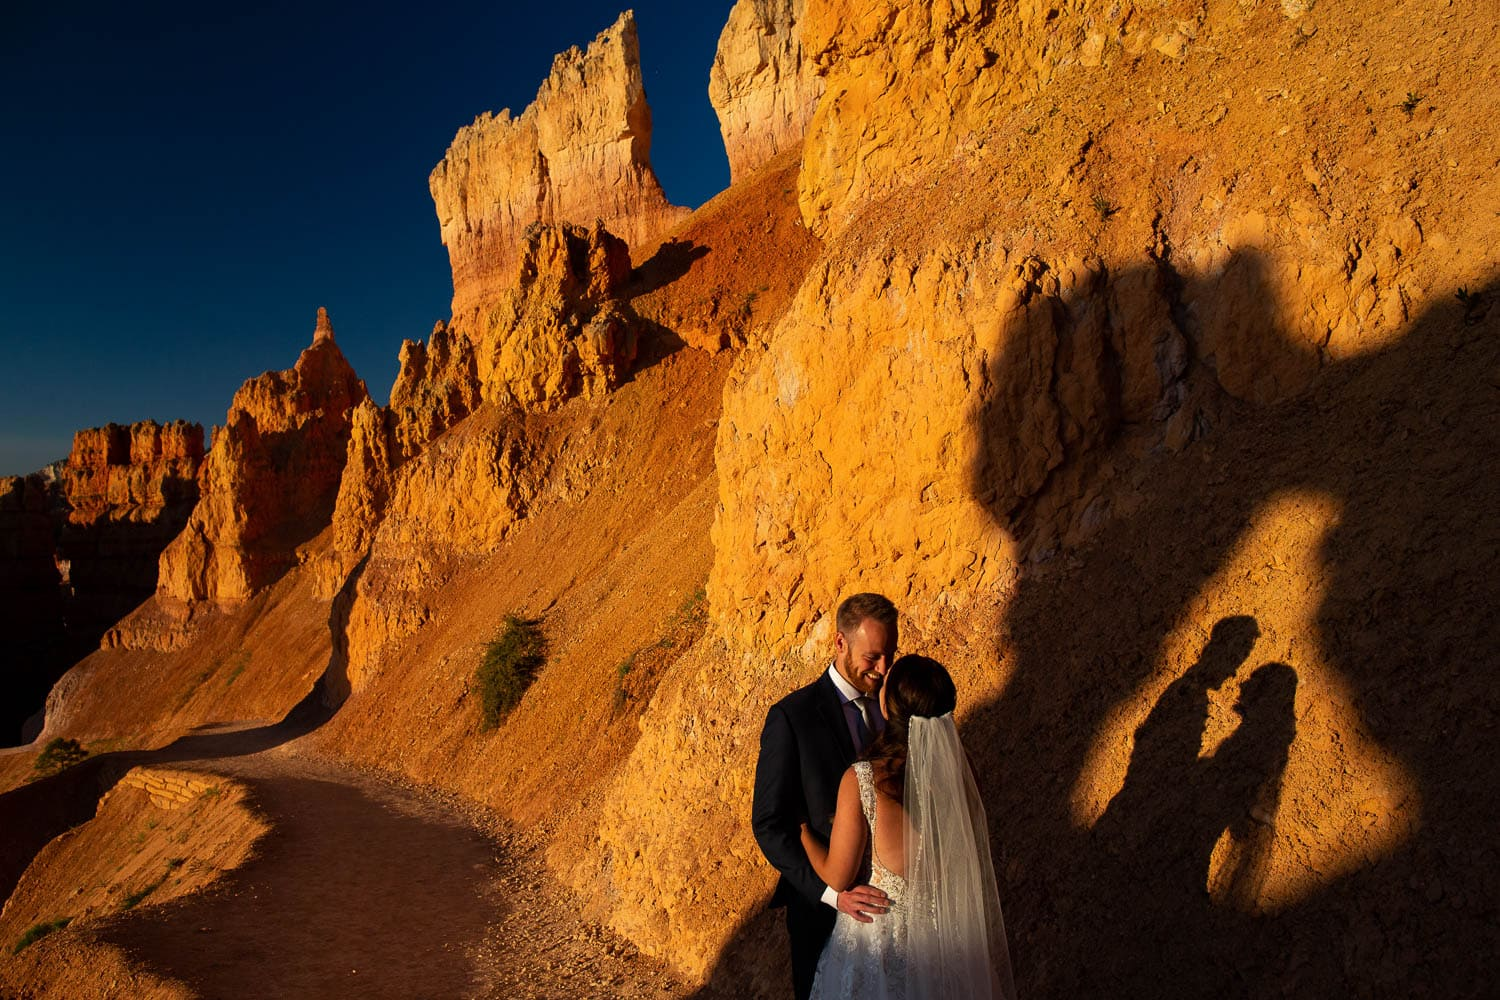 A bride and groom eloping at sunrise in bryce canyon national park.